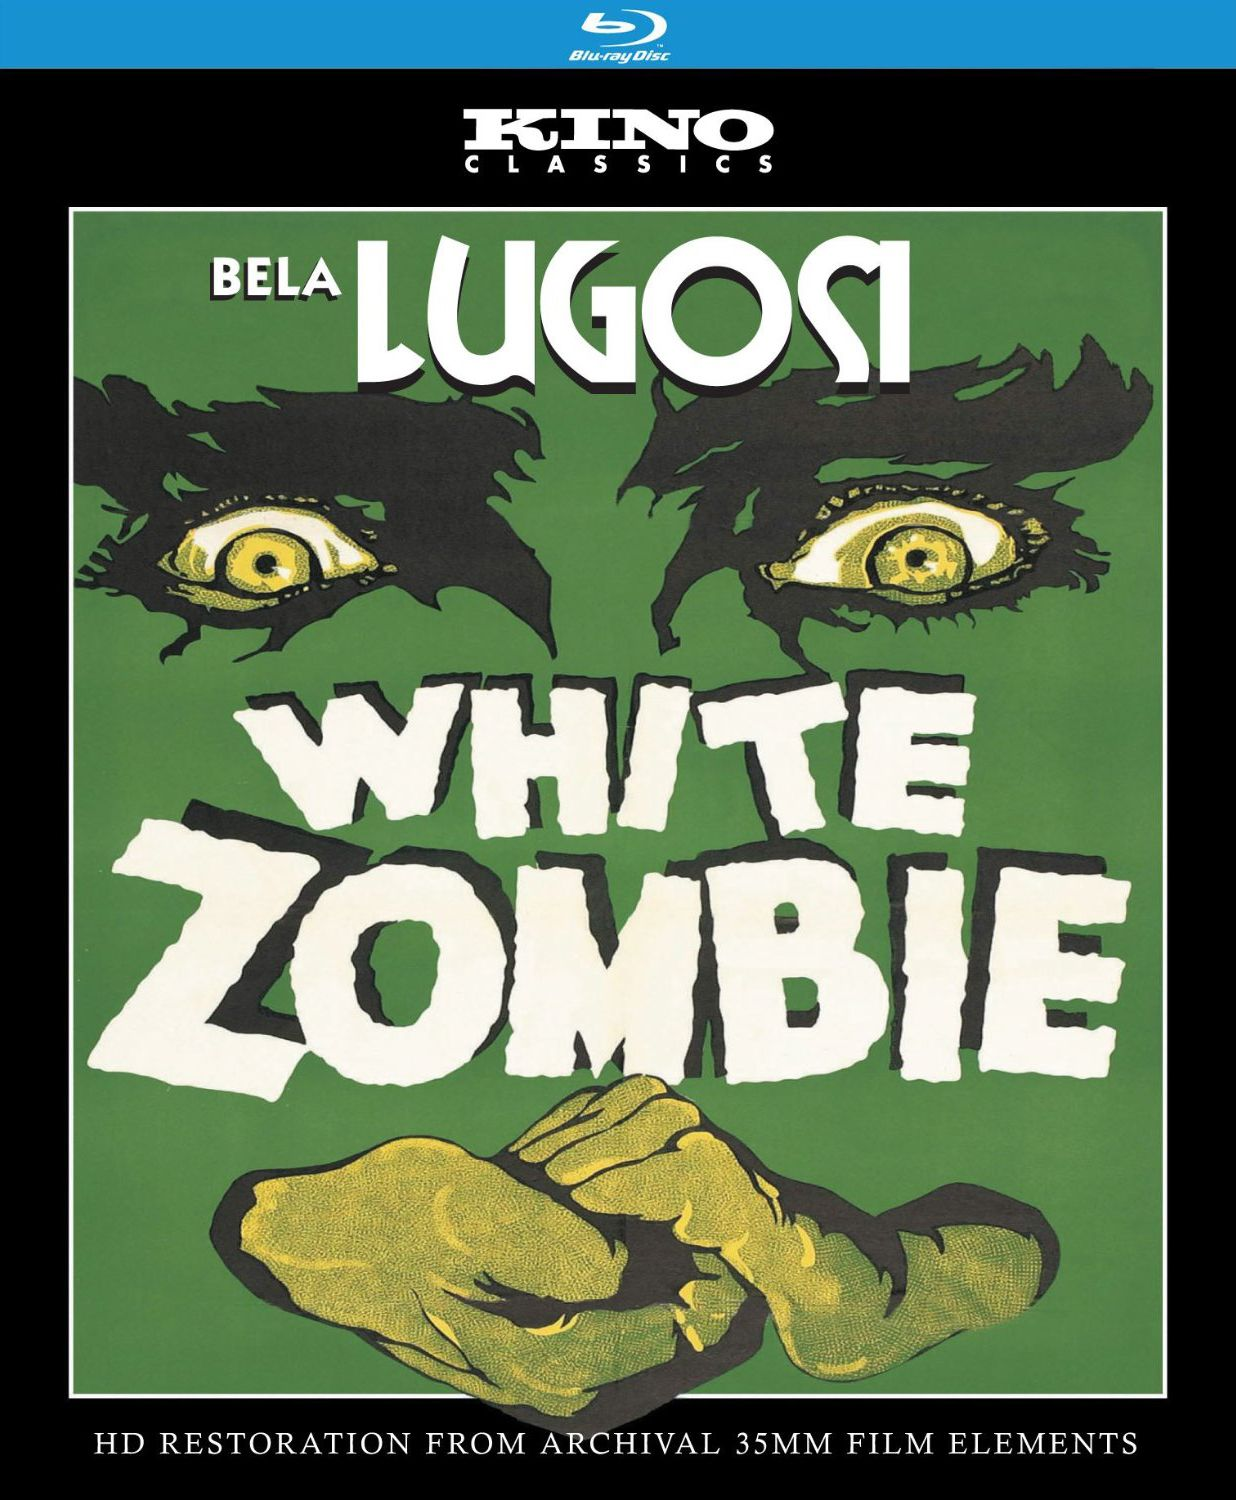 Publicity still for White Zombie